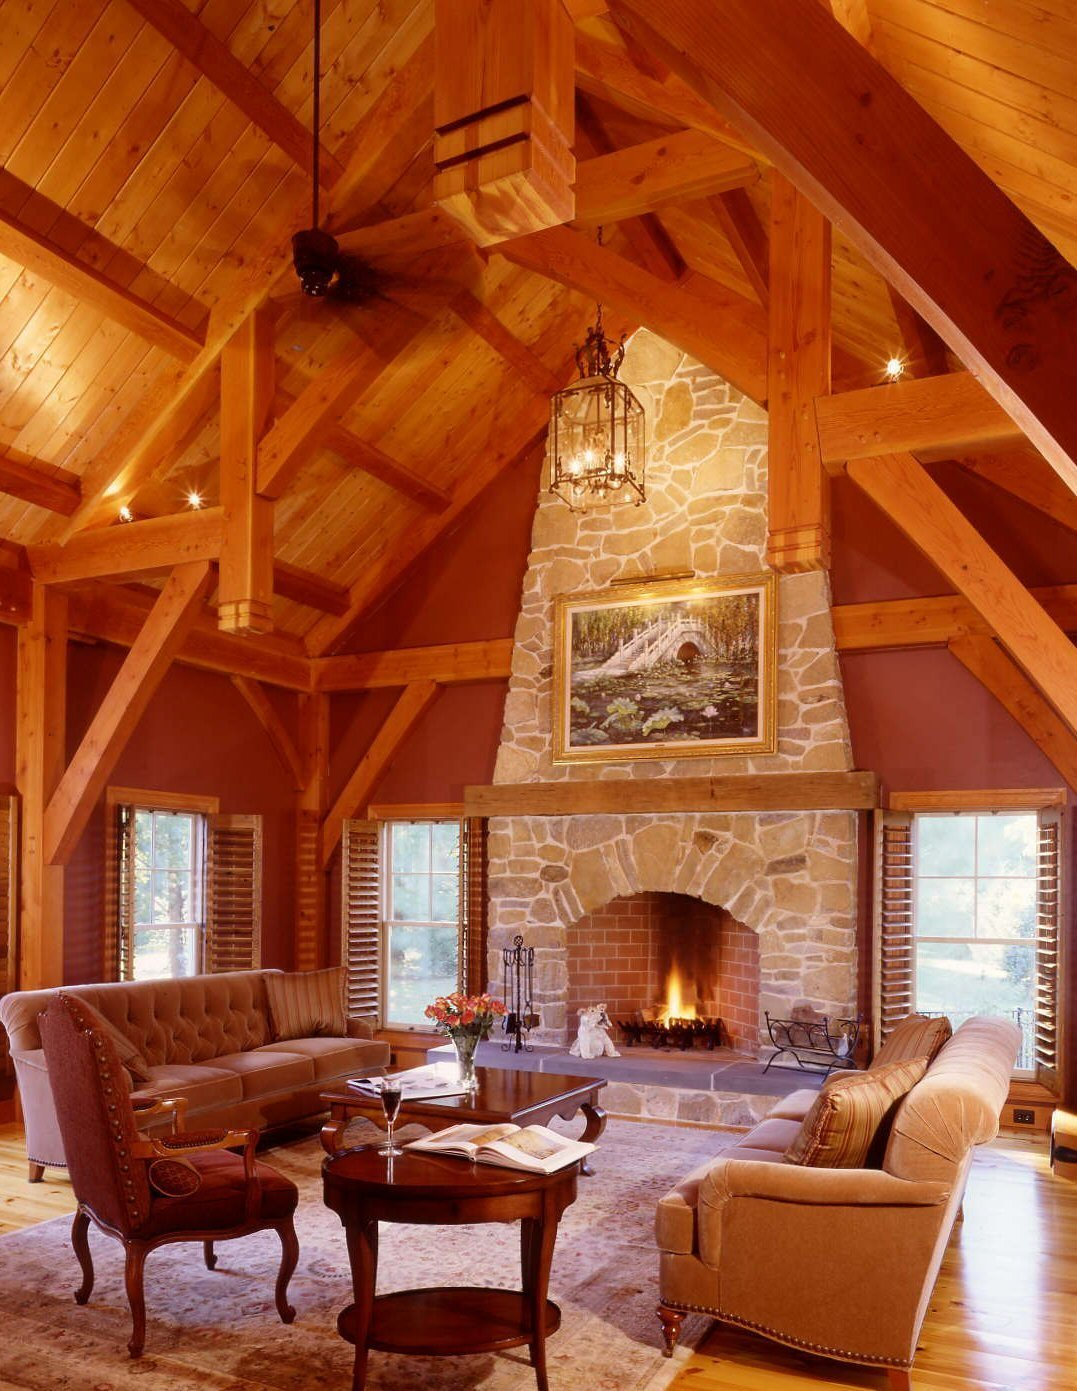 Custom Timberpeg Hammer Beam Truss in the Formal Great Room   Yellow Brook Farm House by Timberpeg